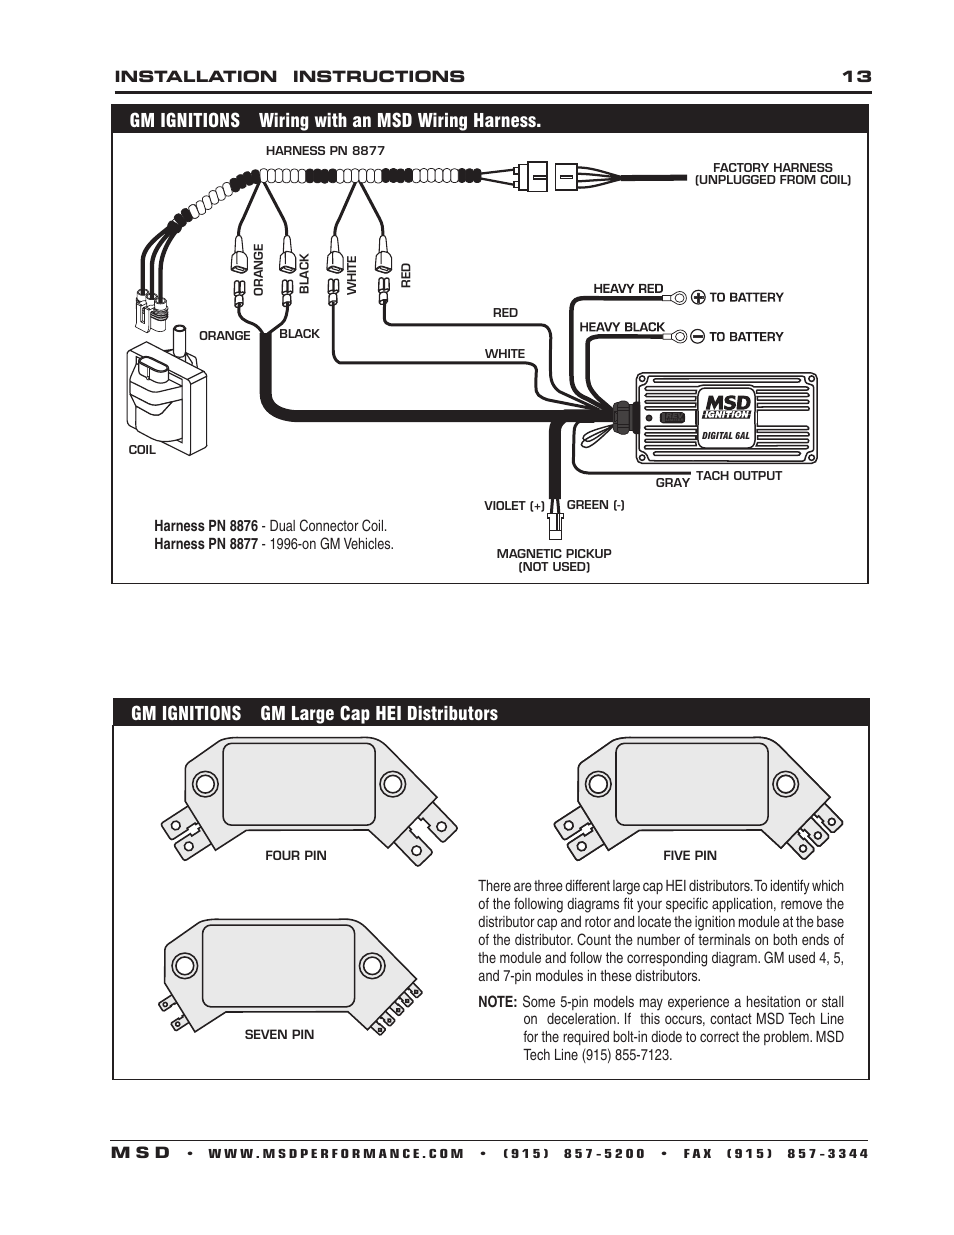 Msd Digital A Ignition Control Page on Gm Wiring Harness Diagram